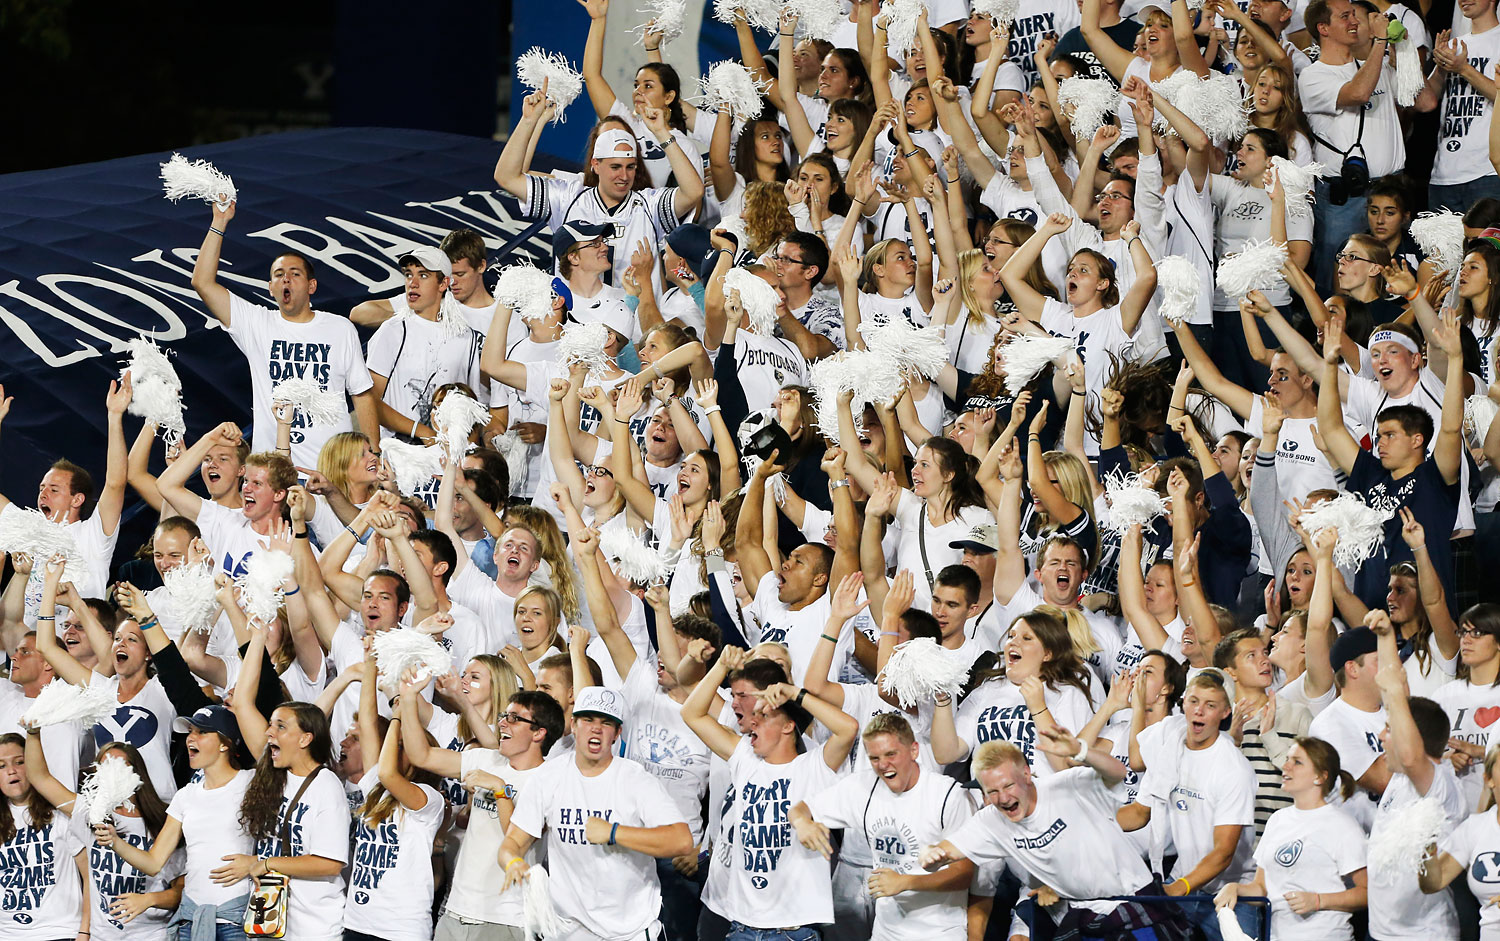 BYU fans cheer during a game against Washington State in 2012 in Provo, Utah.